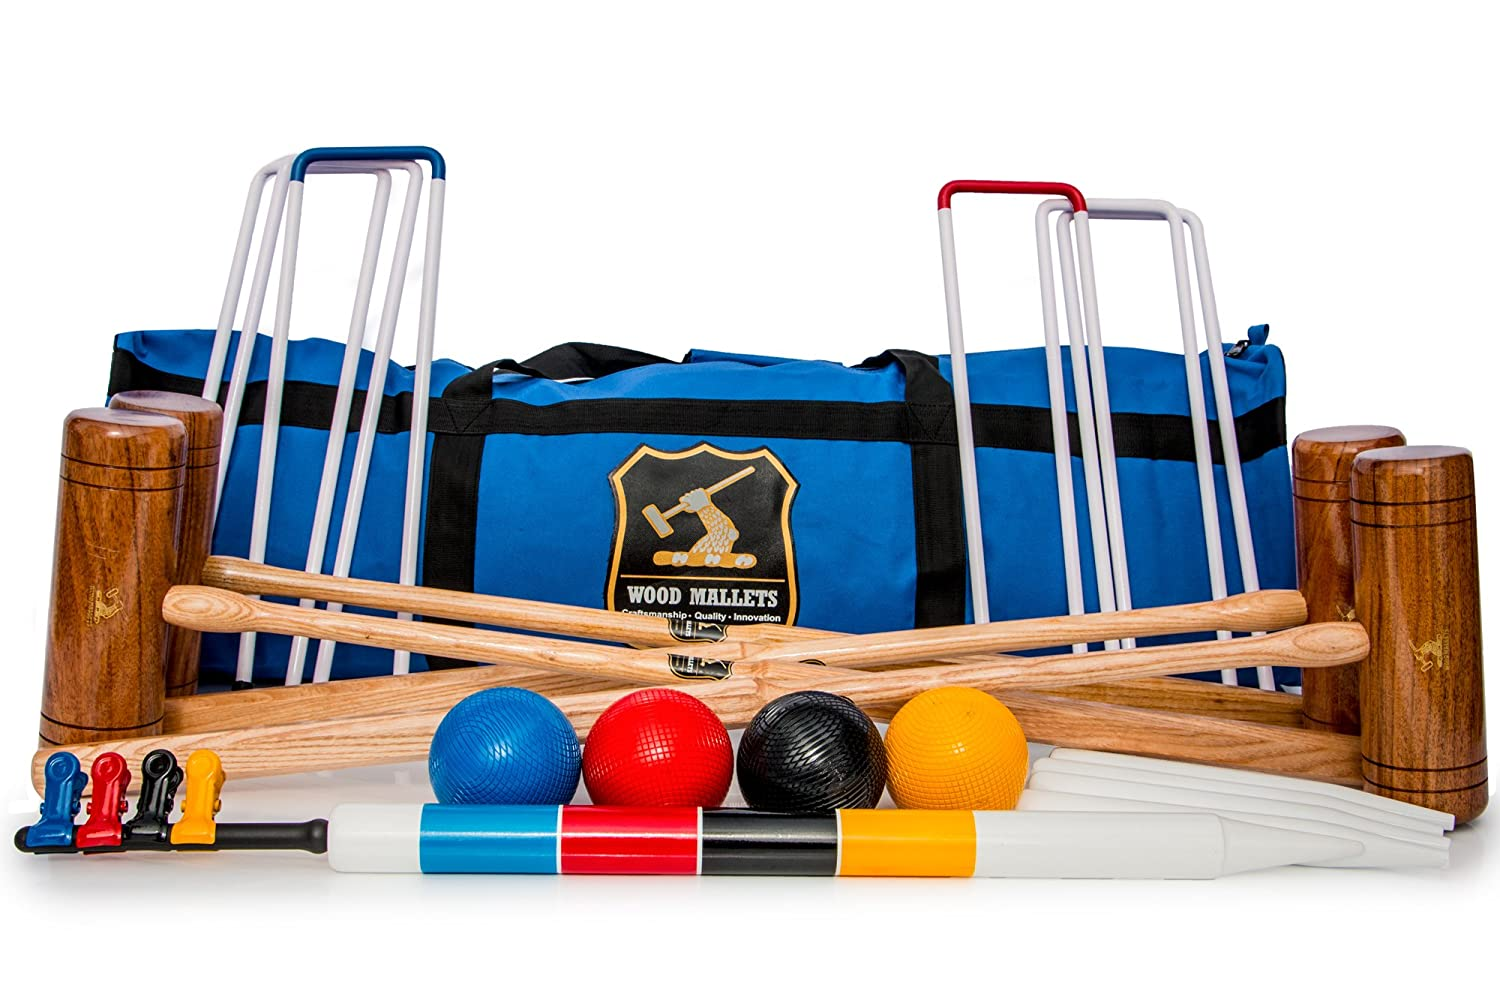 Wood Mallets Premium Garden Croquet Set, 4-Player B06XP87N9D